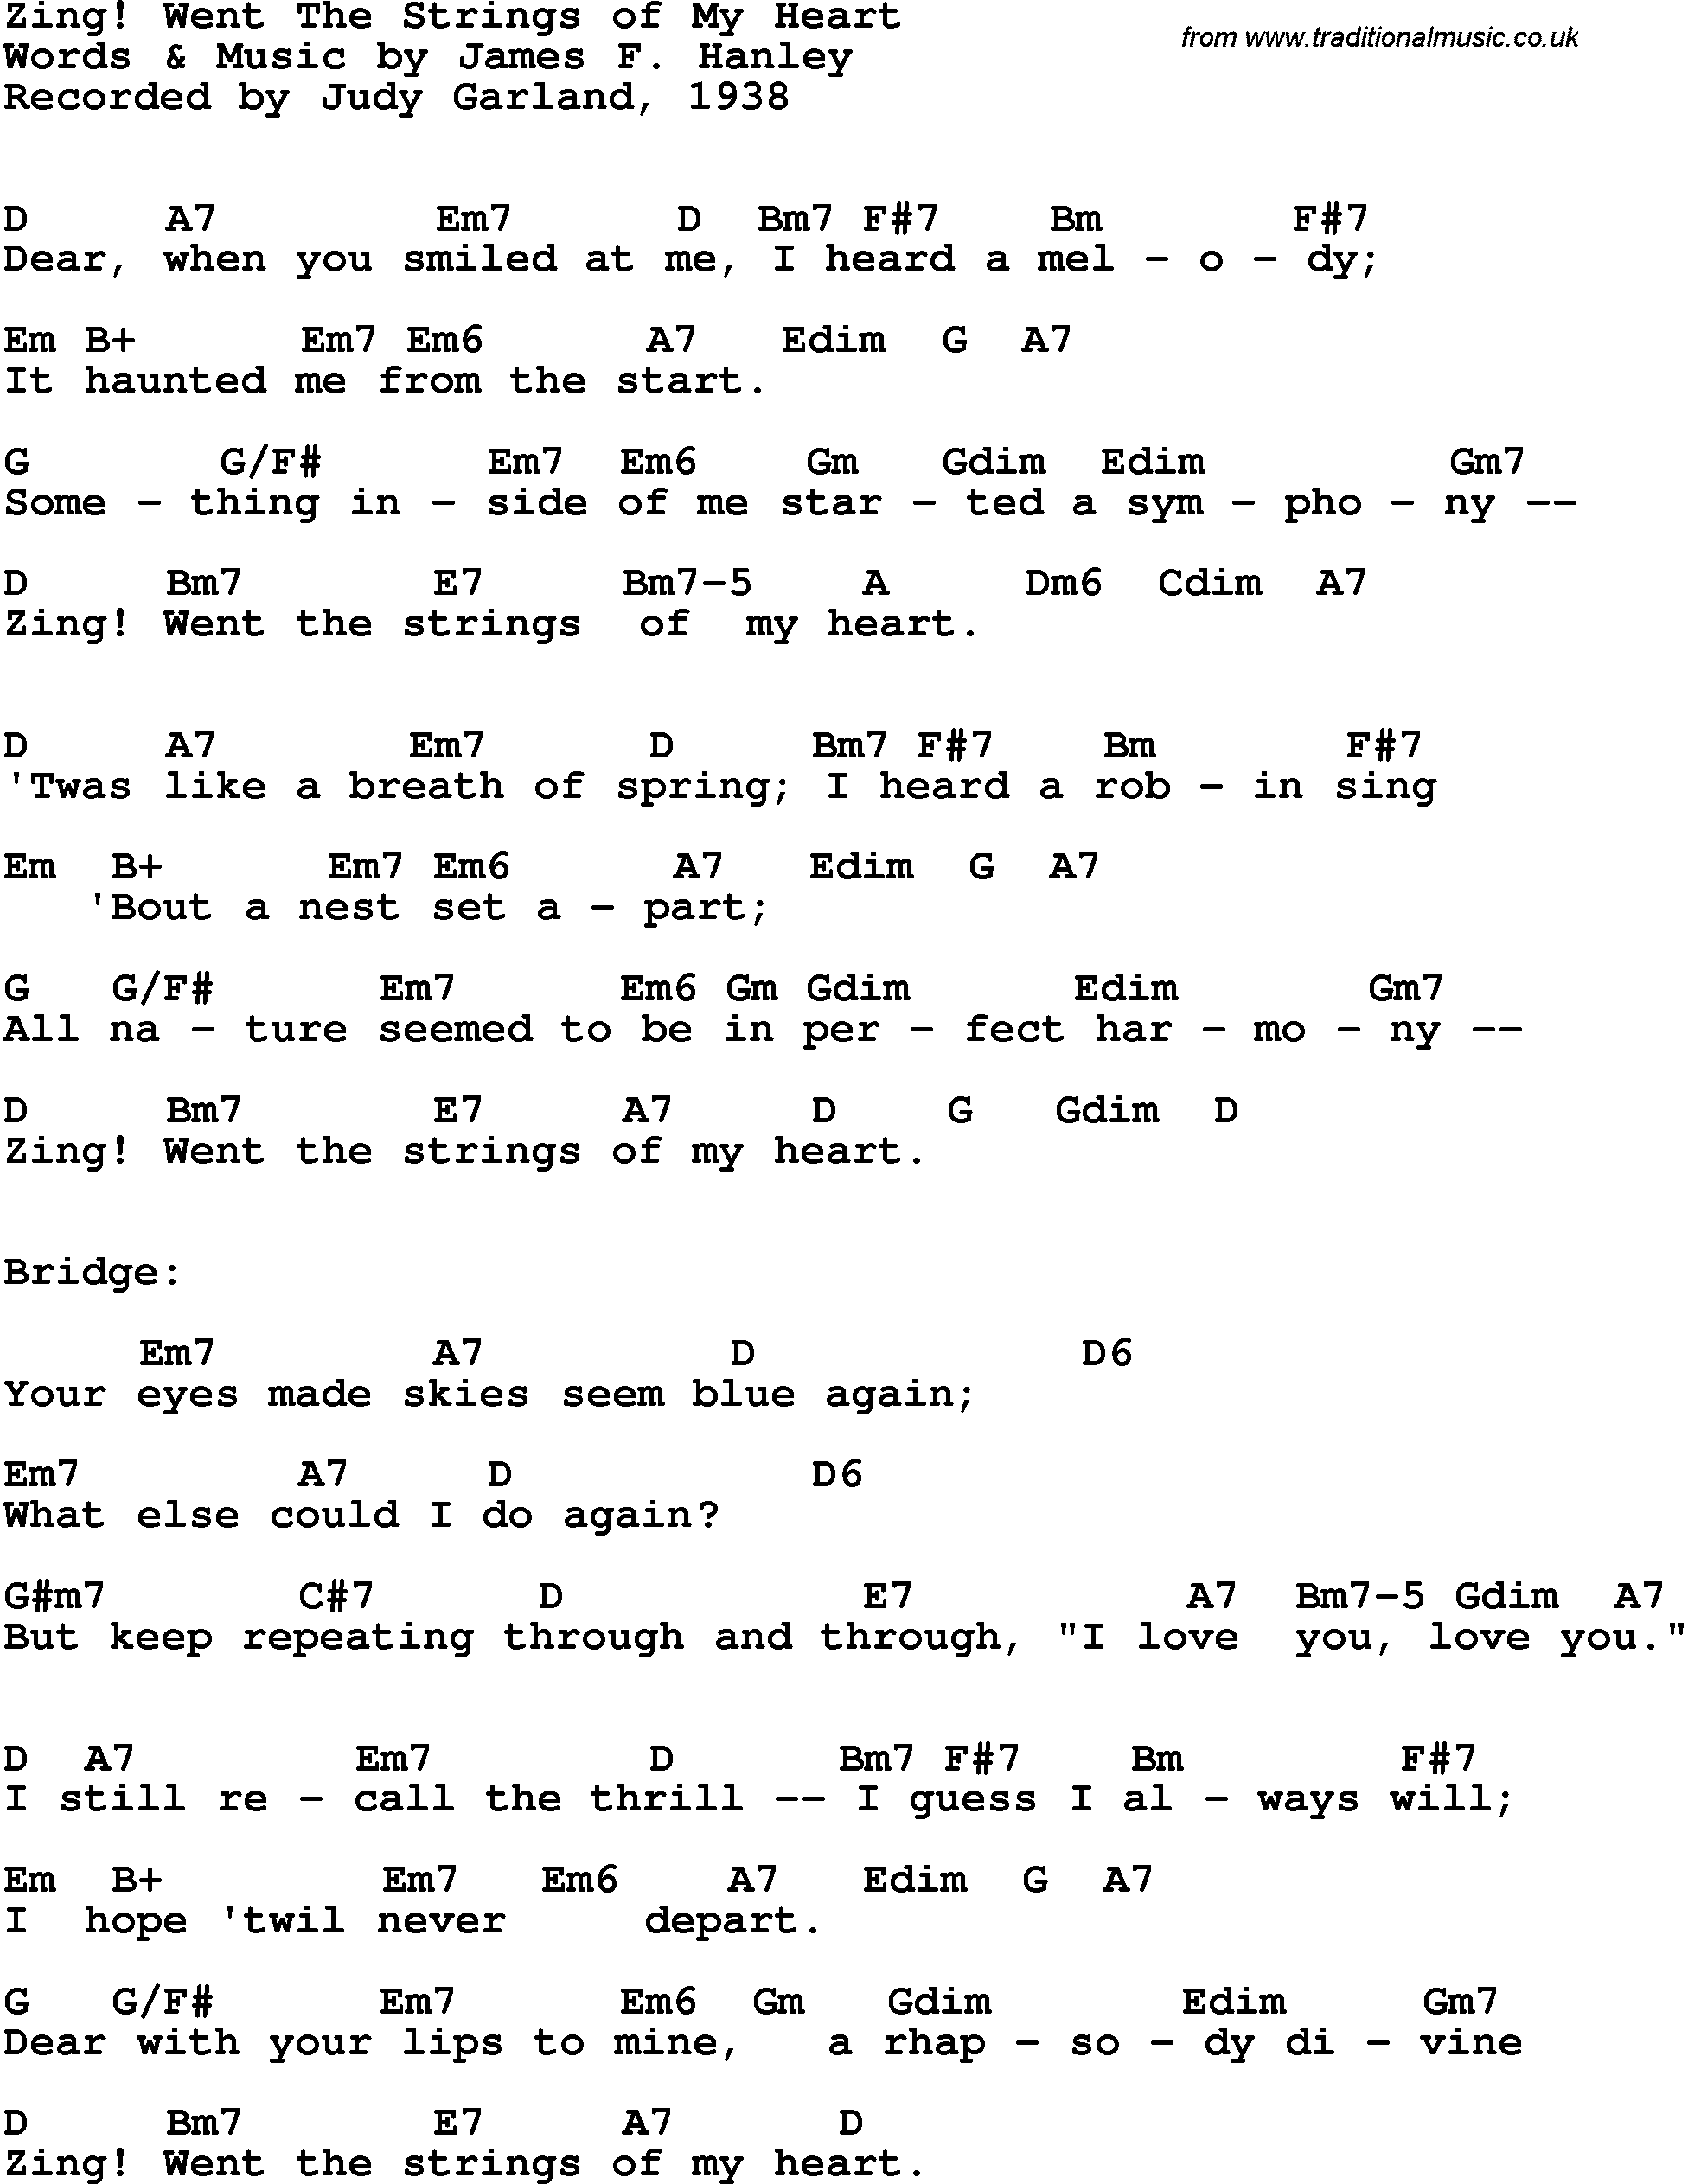 Song Lyrics With Guitar Chords For Zing Went The Strings Of My